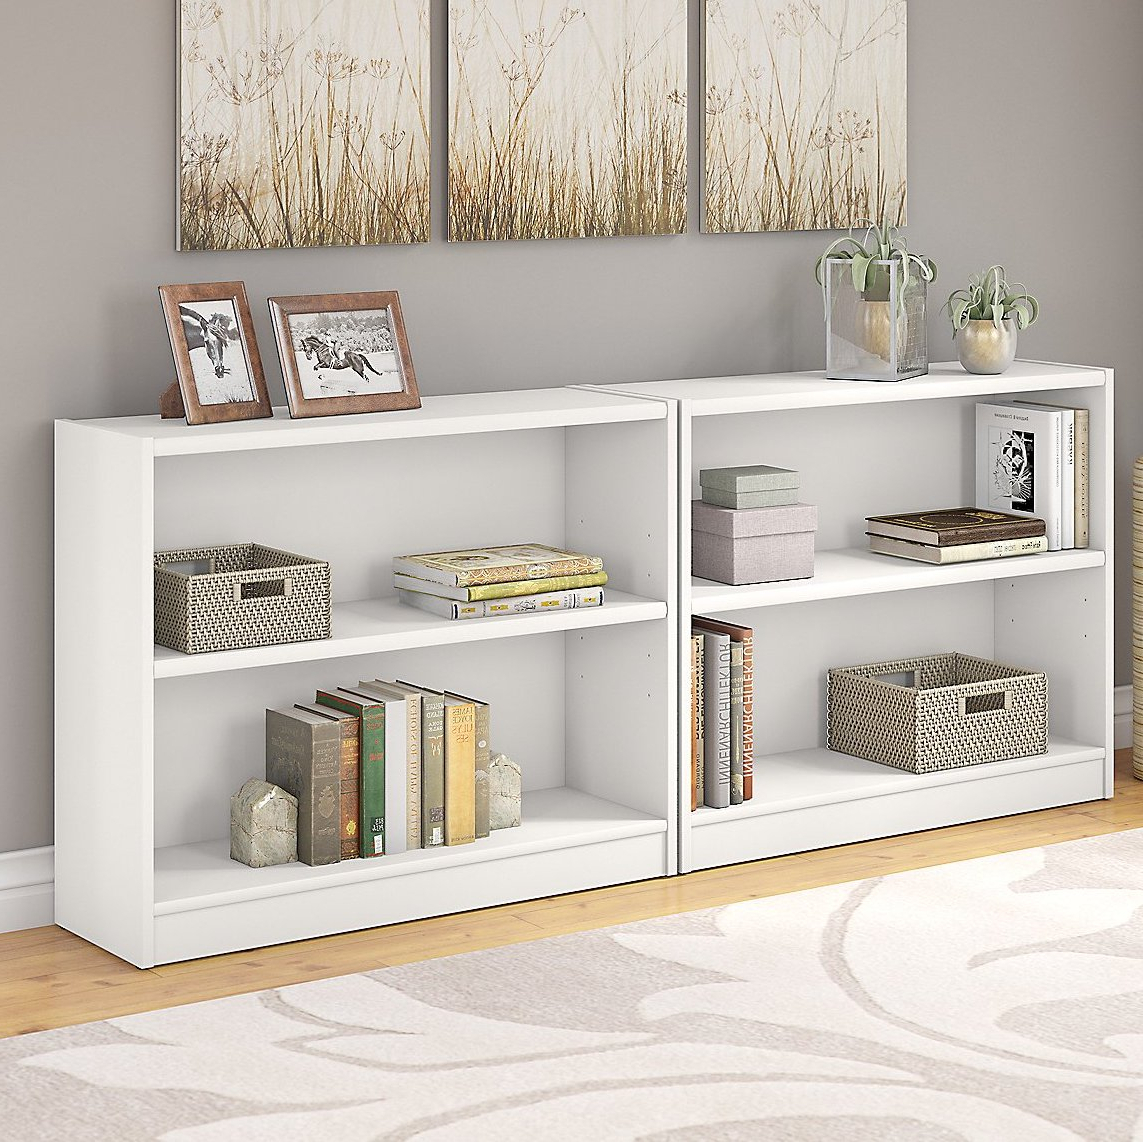 Latest Morrell Standard Bookcase Throughout Standard Bookcases (View 5 of 20)